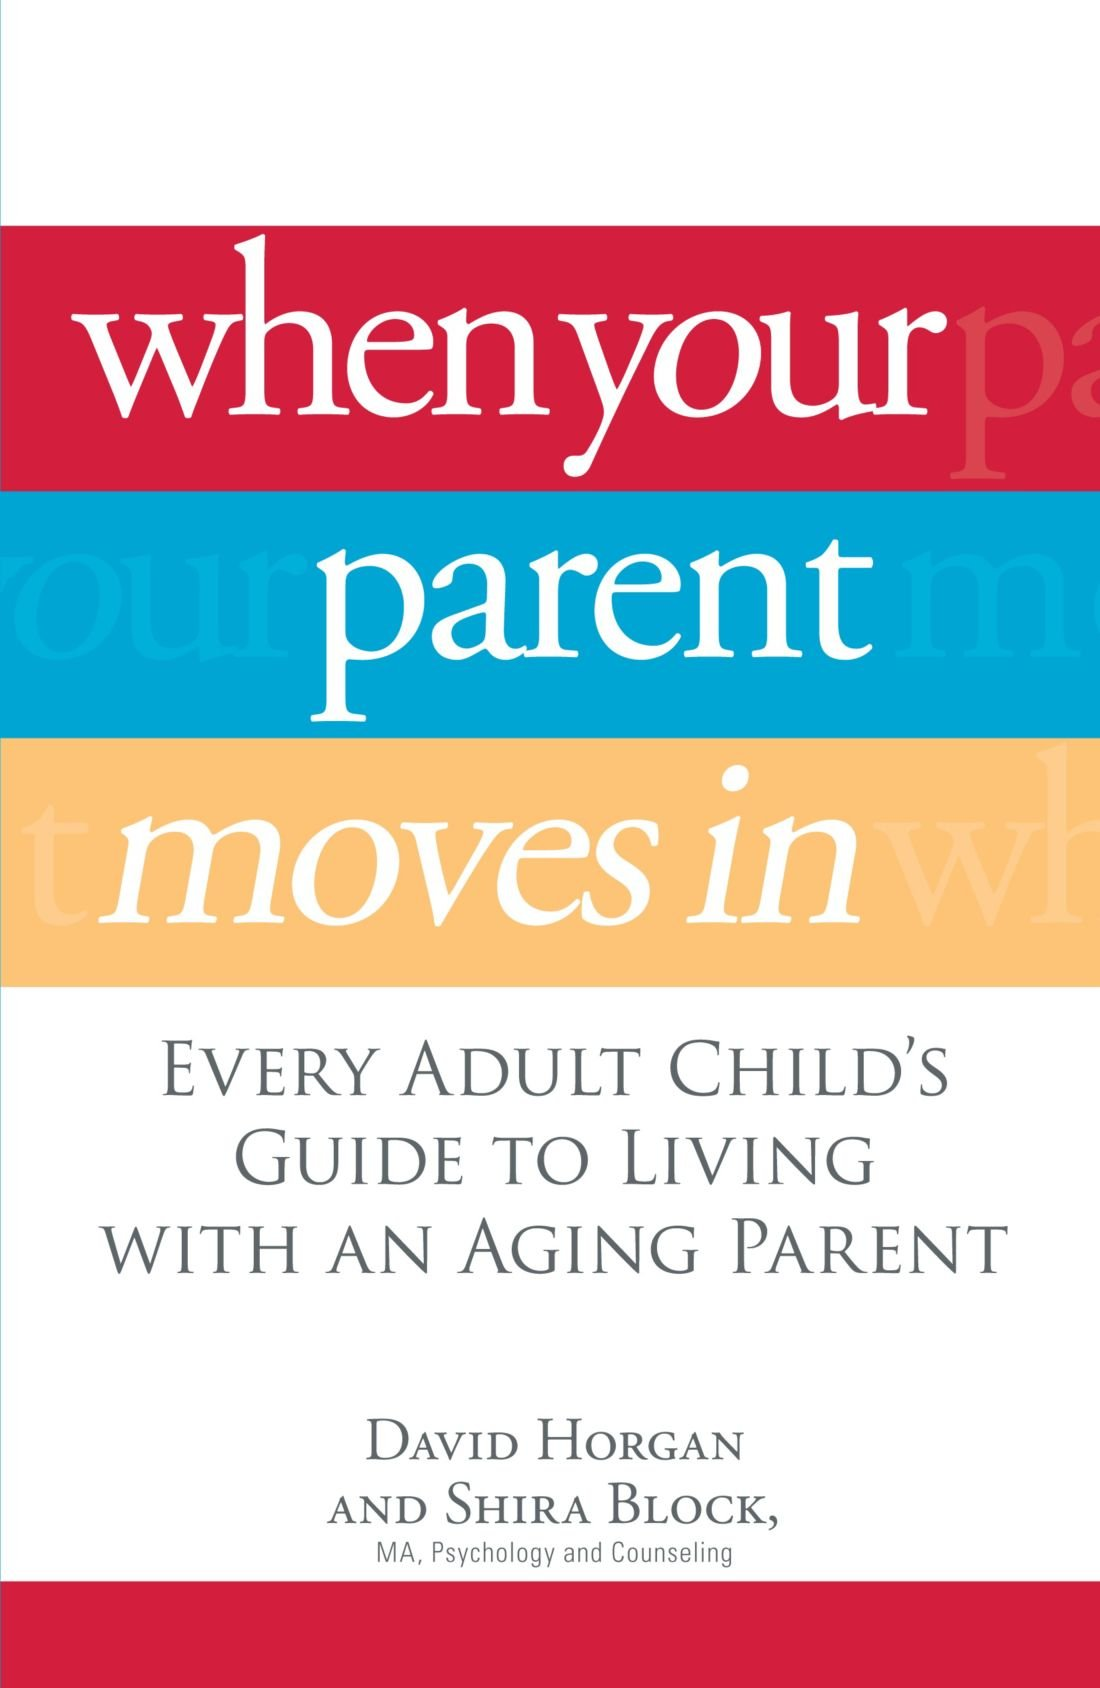 When Your Parent Moves In: Every Adult Child's Guide to Living with an Aging Parent ebook